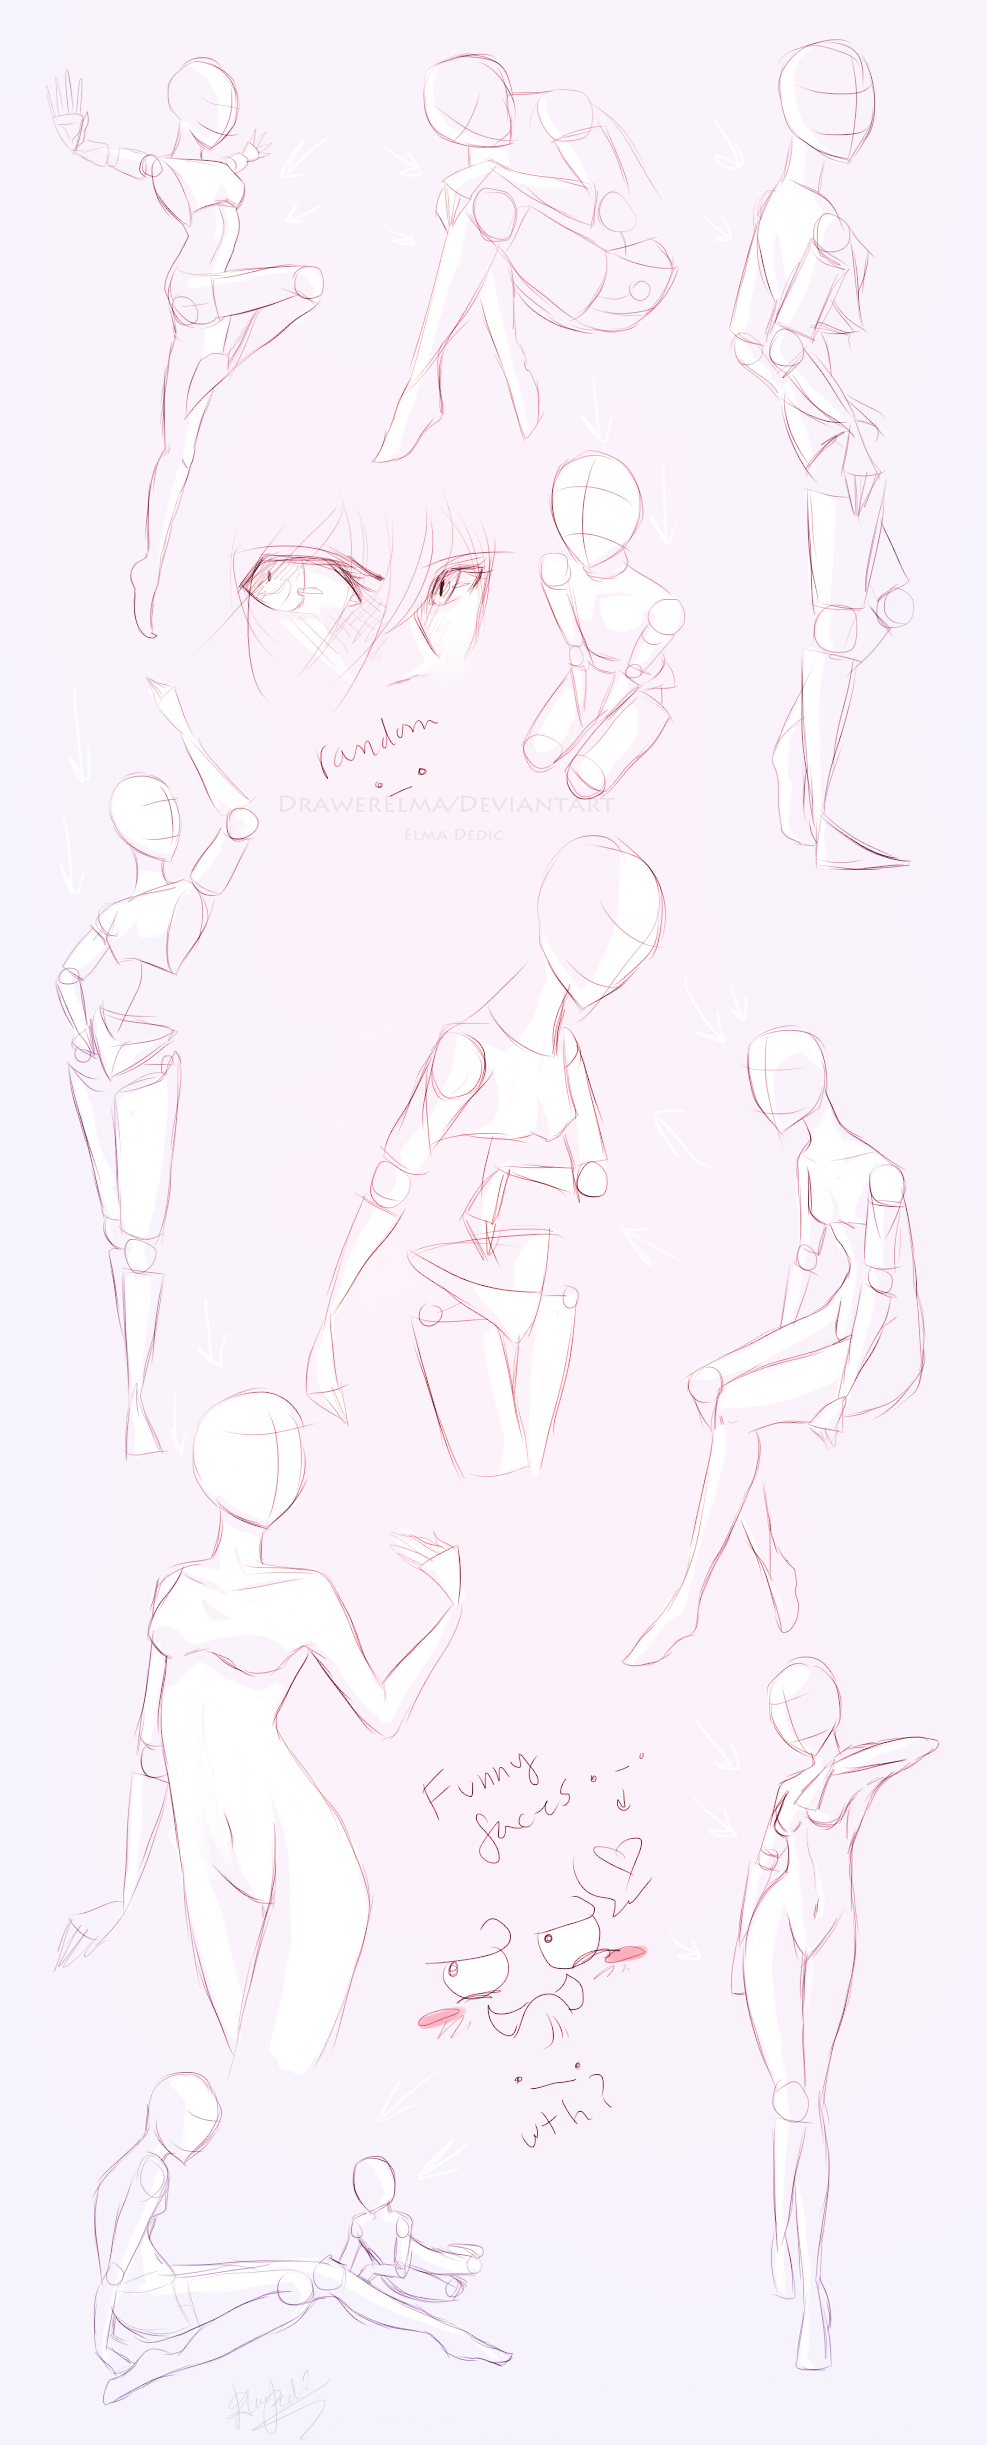 Line Drawing Woman Body : Female human body sketches